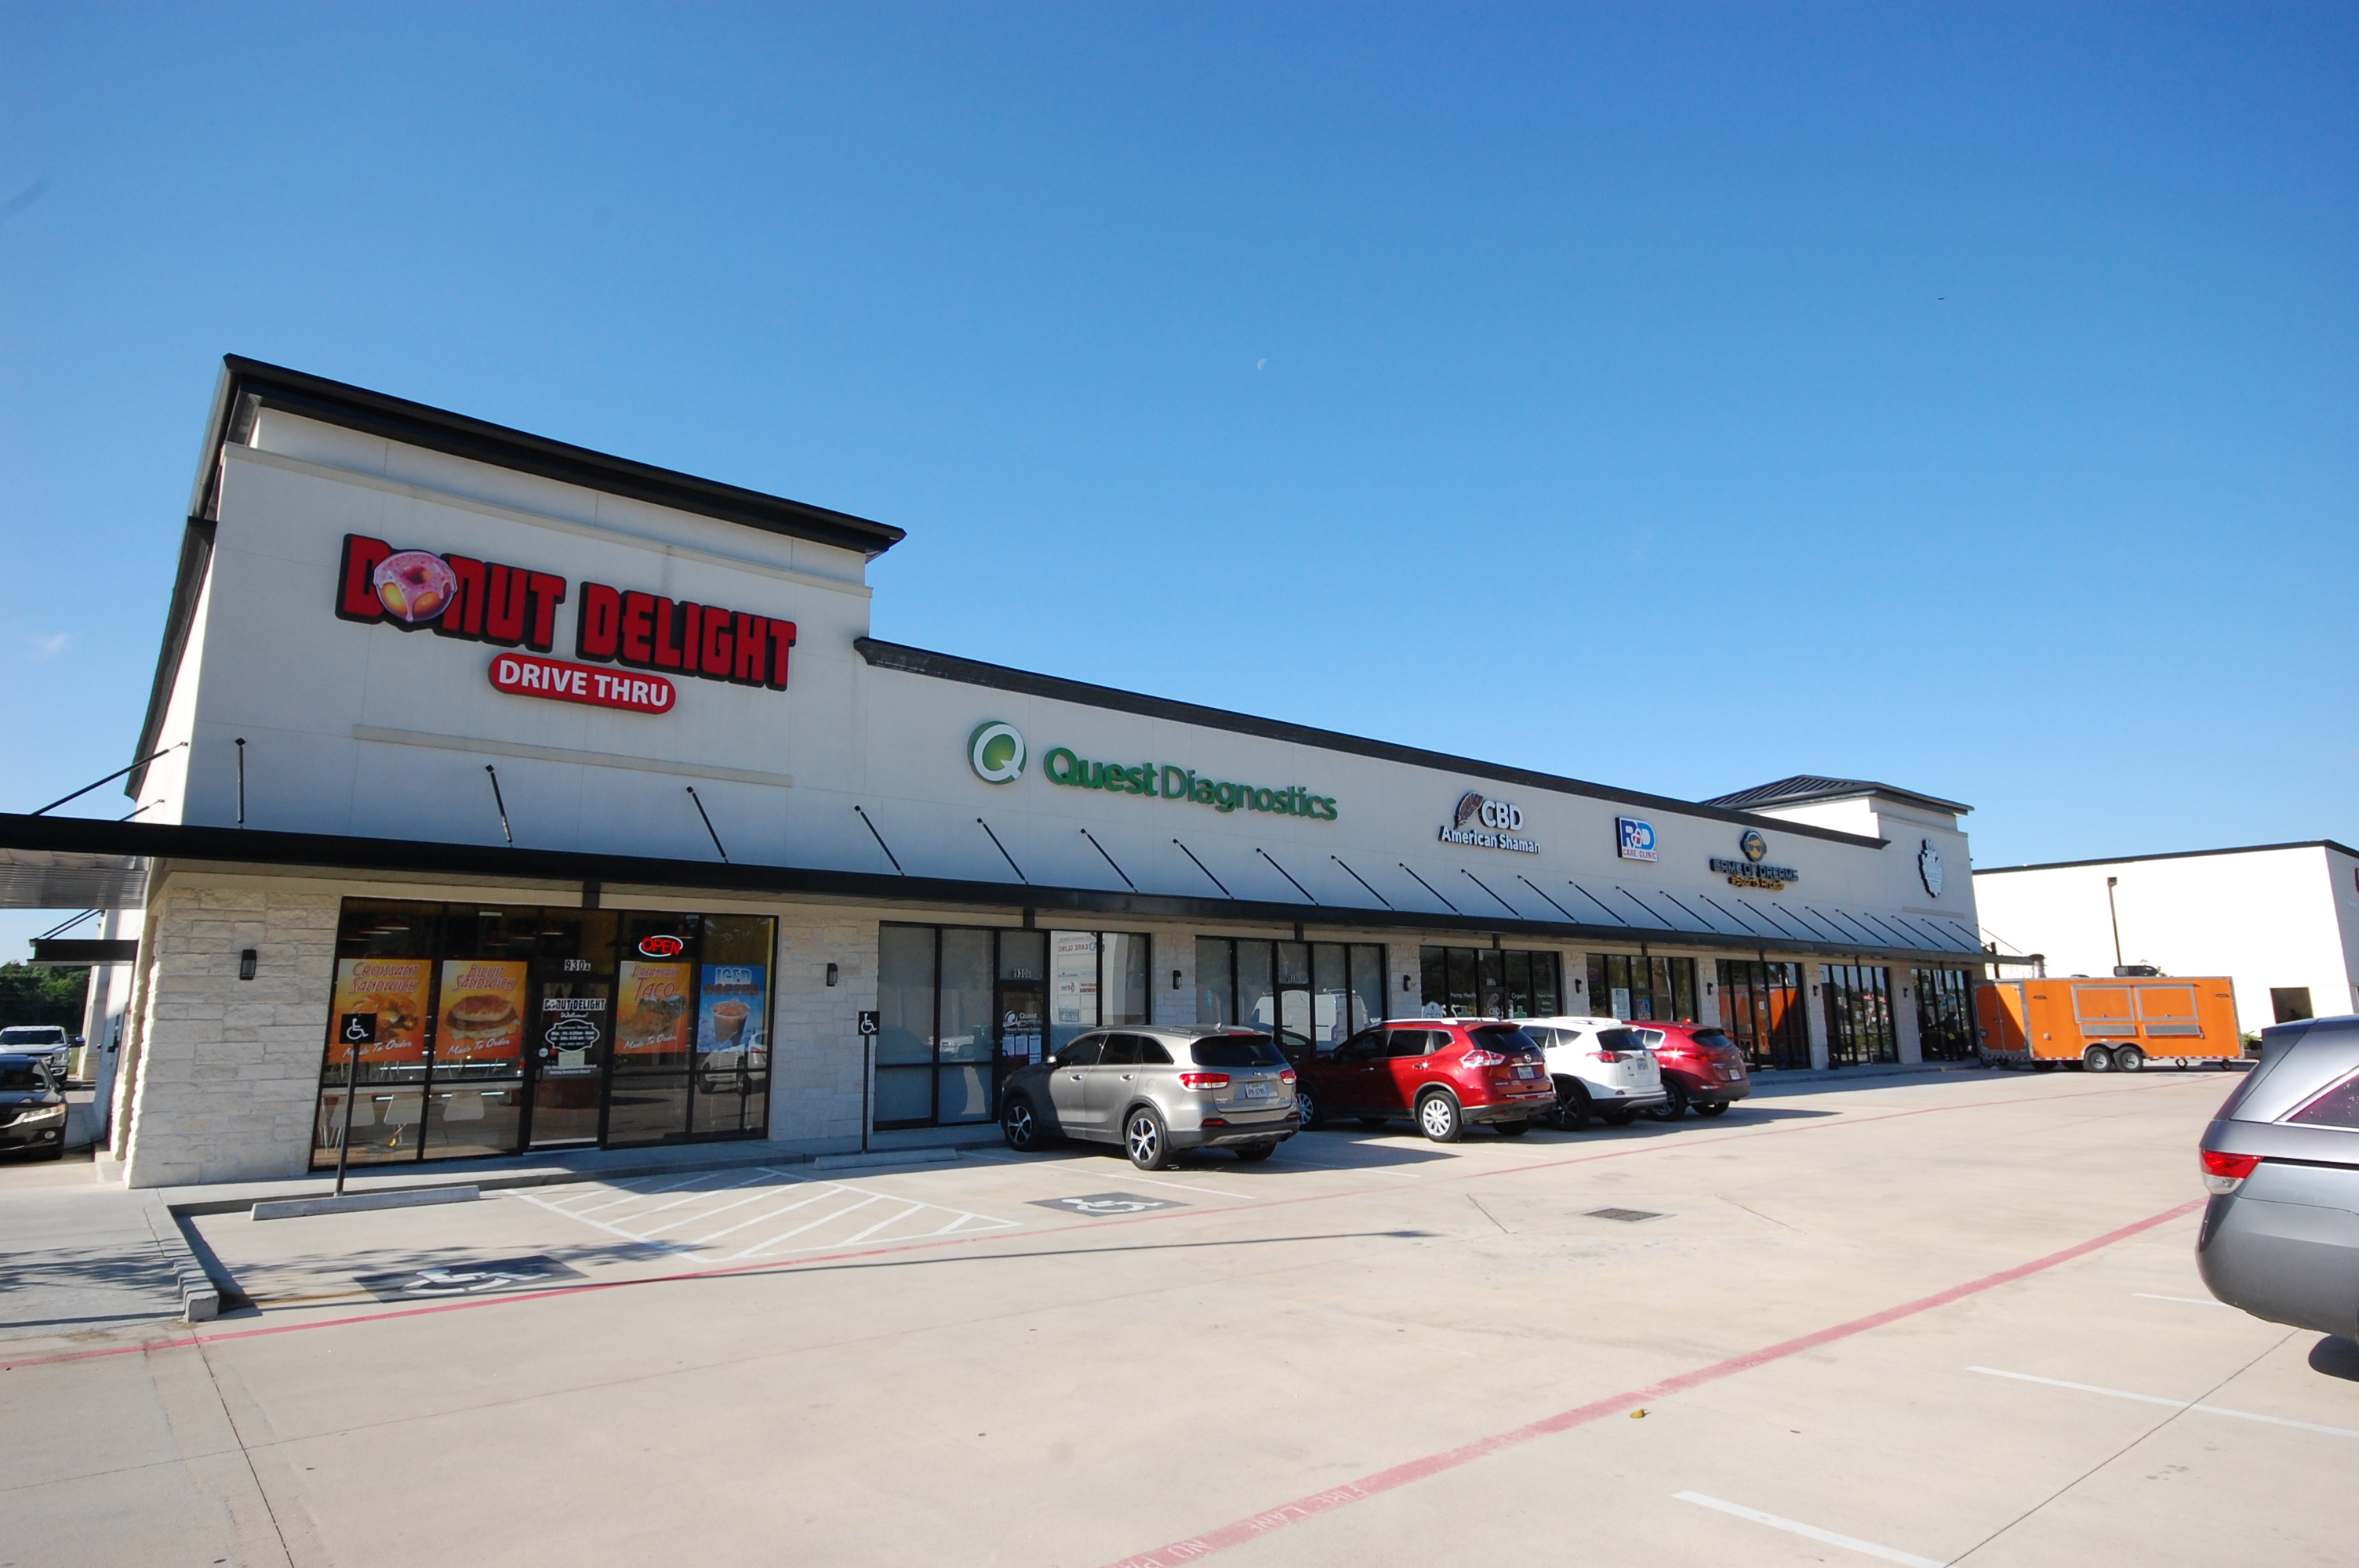 11,900sqft Retail Center